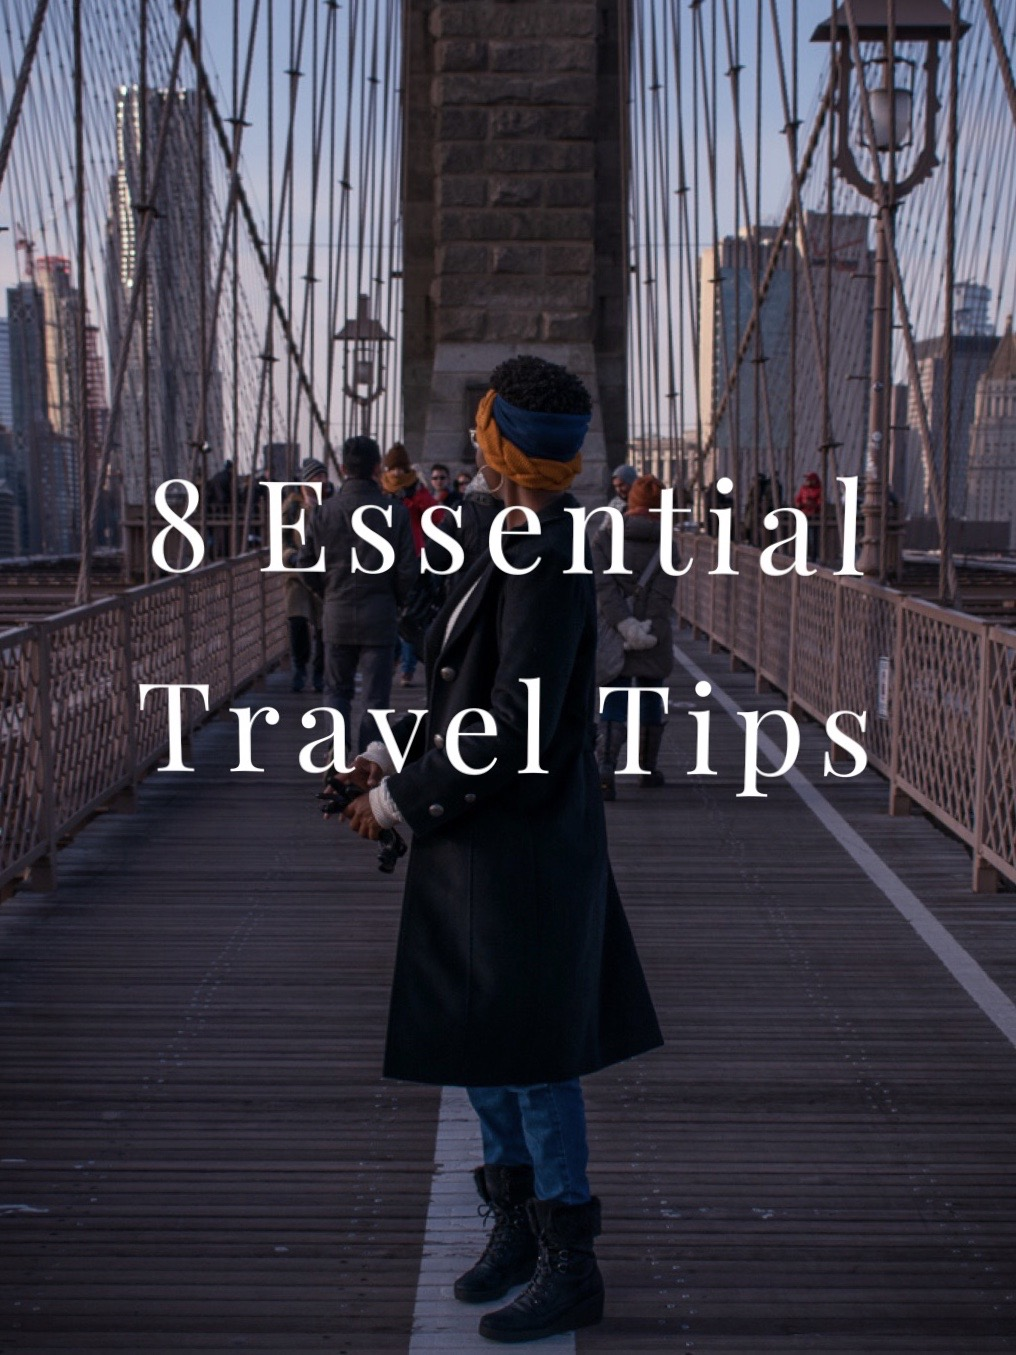 8 Essential Travel Tips.JPG